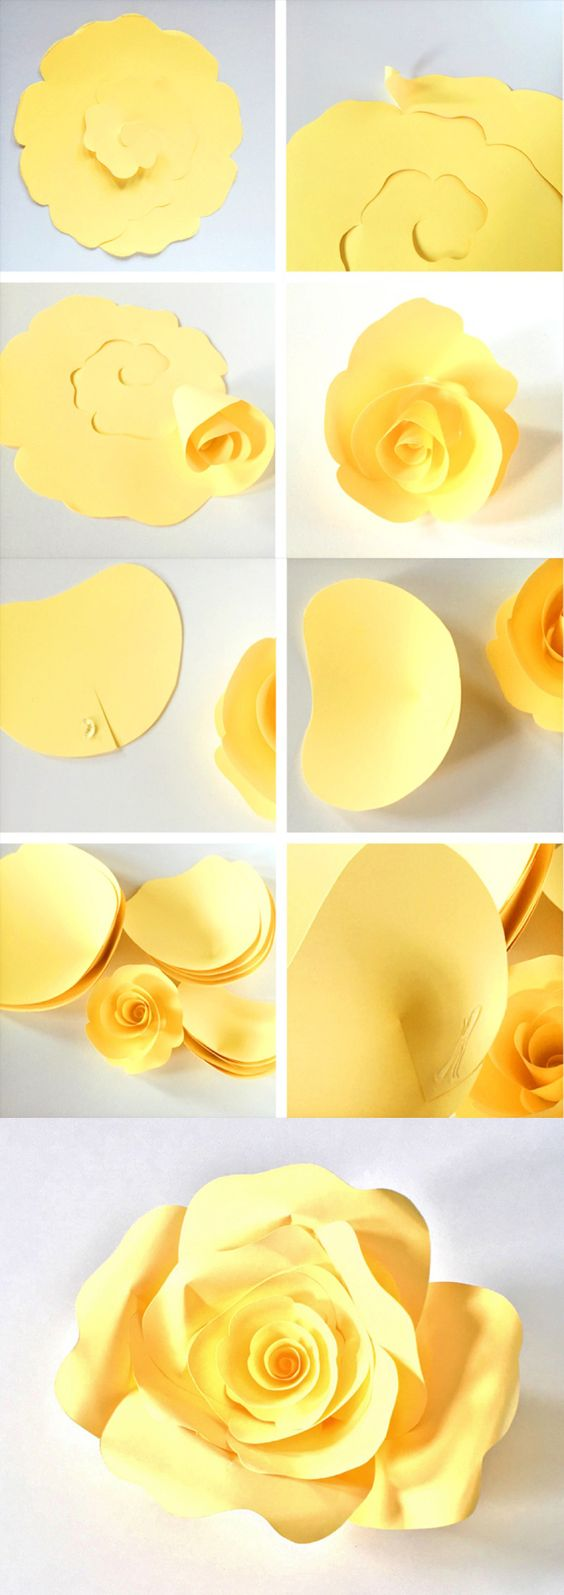 DIY Paper Roses With Free Printable Template.